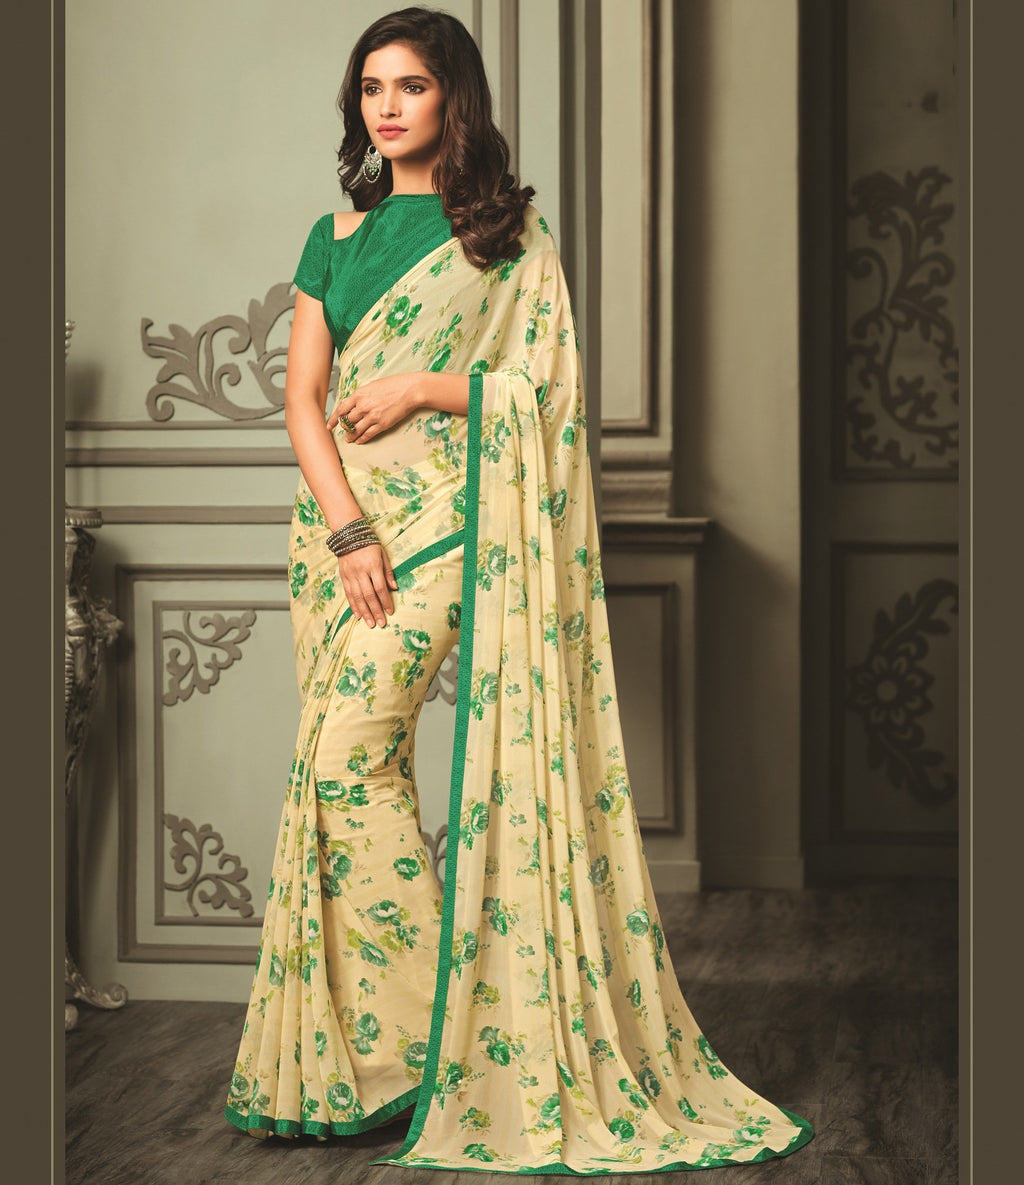 Light Yellow & Green Color Georgette Floral Printed Sarees  Ruchi-Guldasta5 Catlog SJ-2177